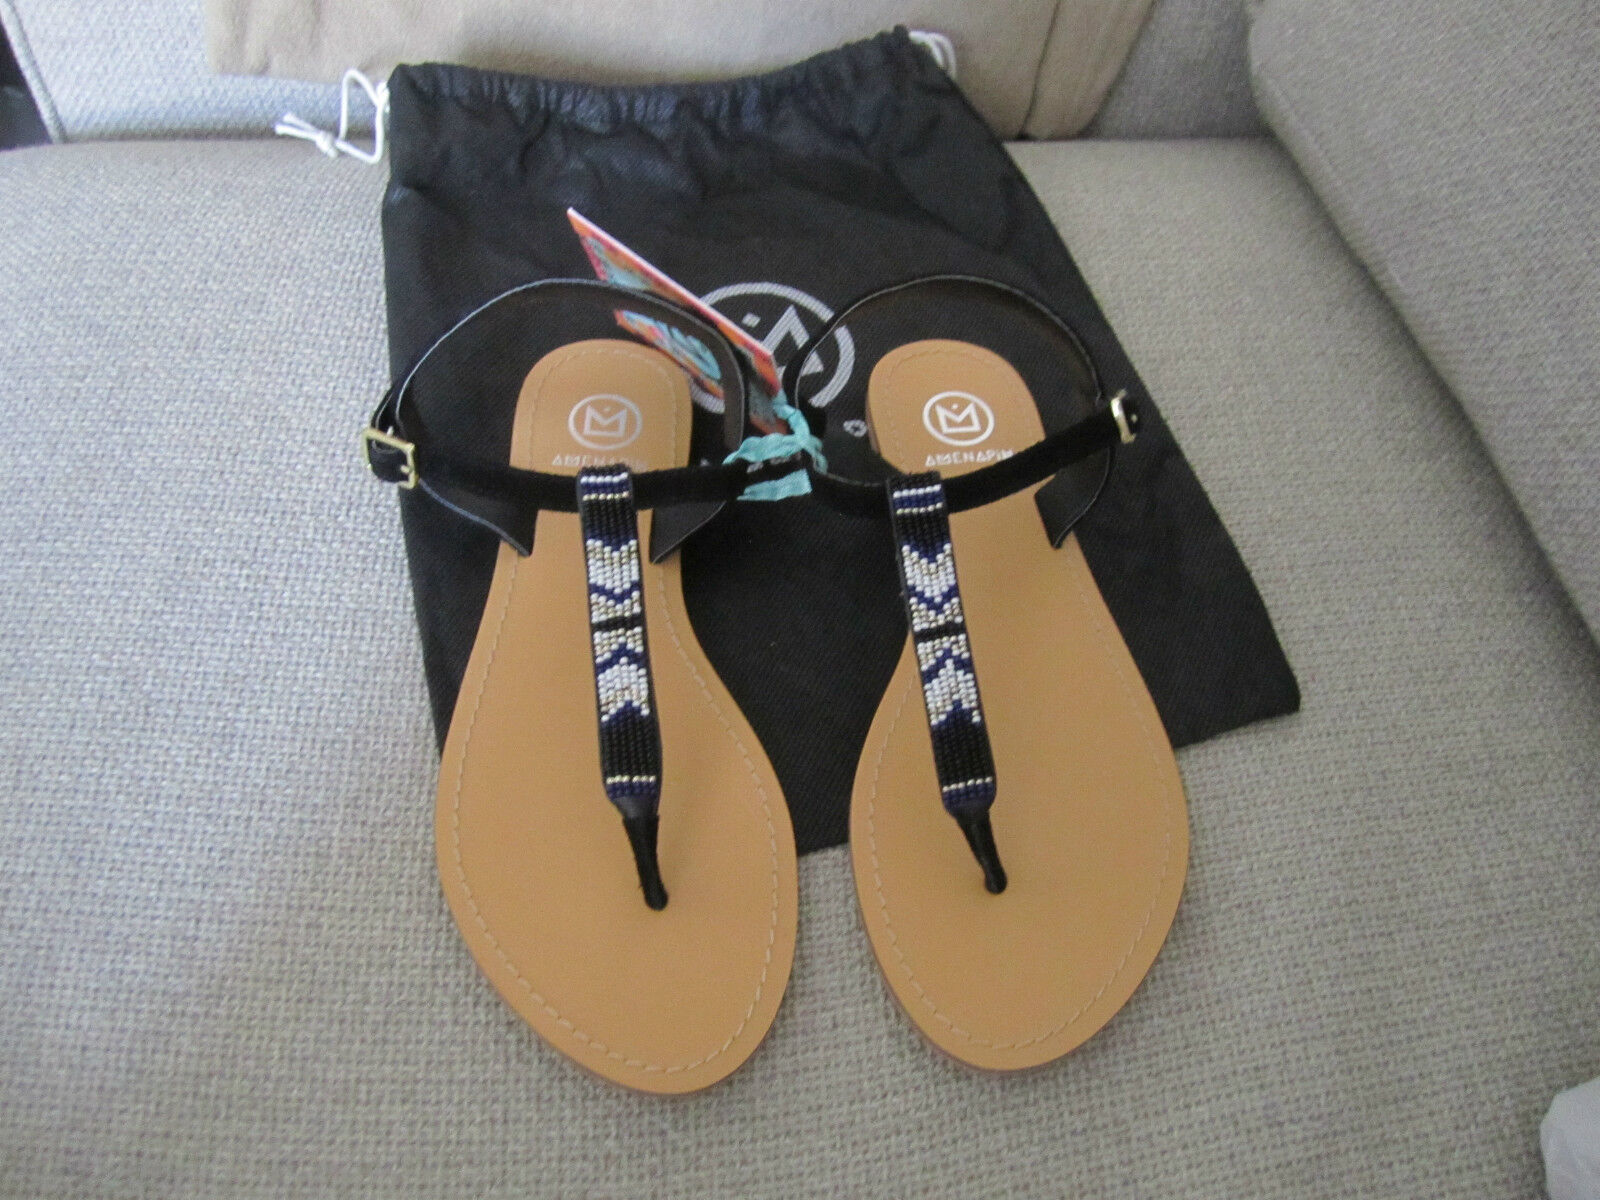 SANDALES AMENAPIH BY HIPANEMA ENTRE-DOIGTS 38 THONG SANDAL TAILLE 38 ENTRE-DOIGTS 96cf9a